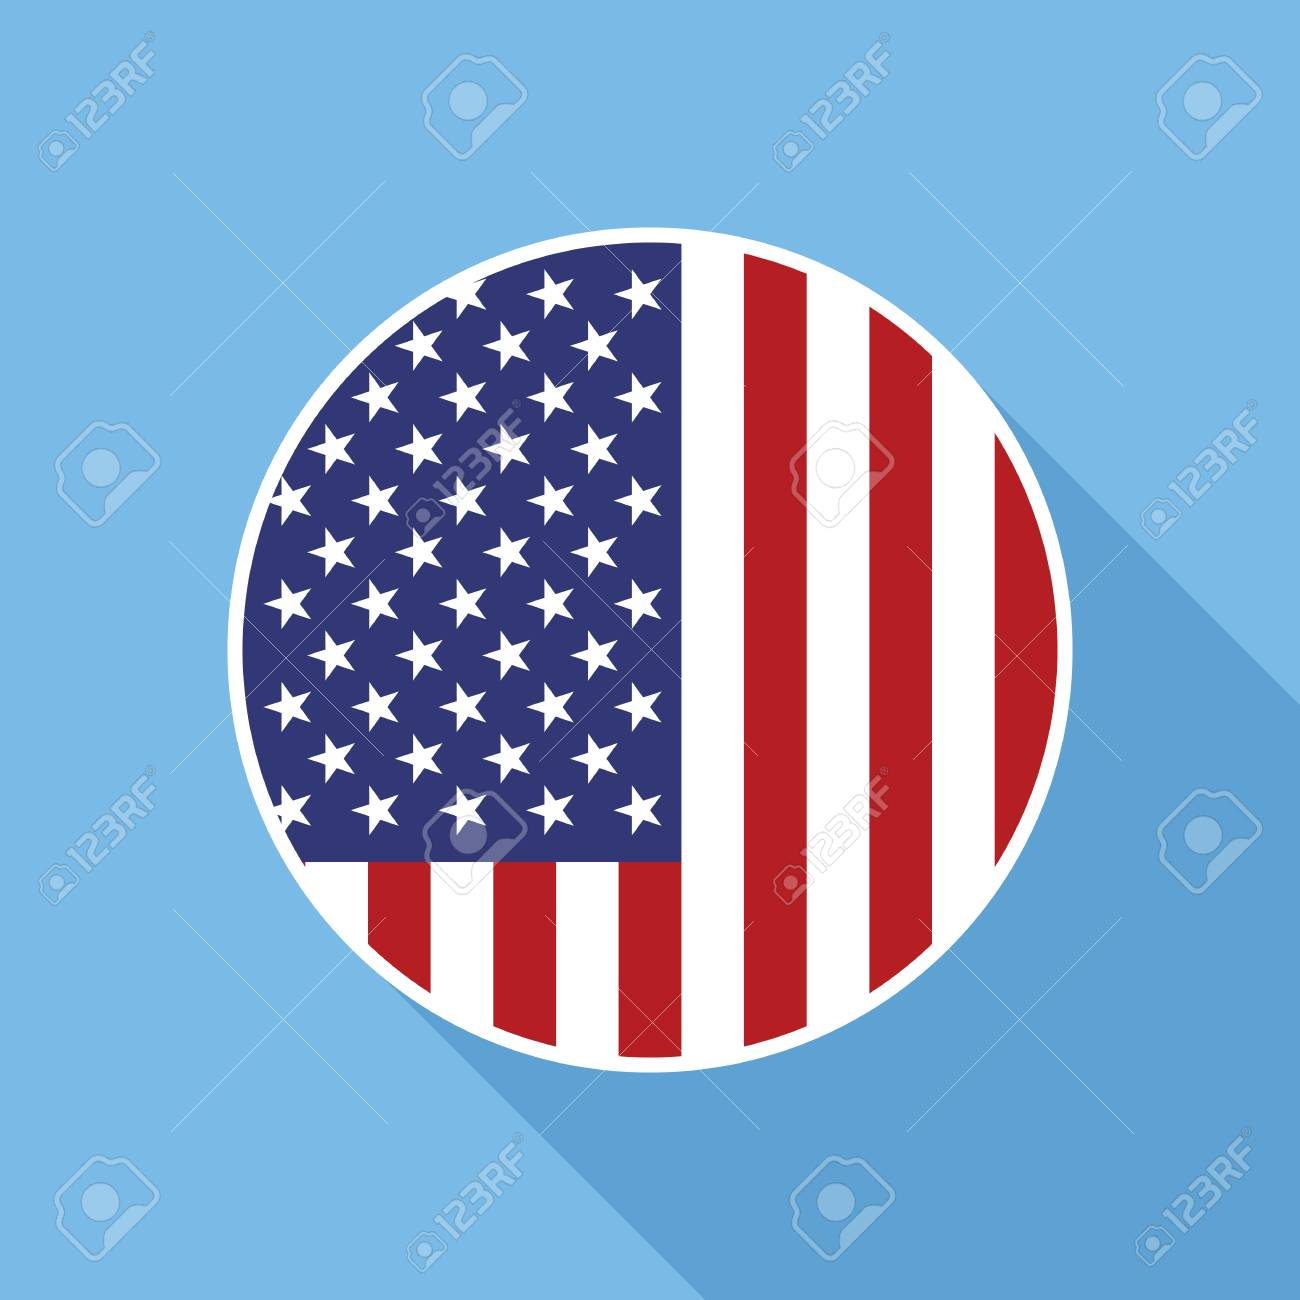 usa national flag vector flat icon vector icon of american flag rh 123rf com free vector usa flag circle usa flag circle vector